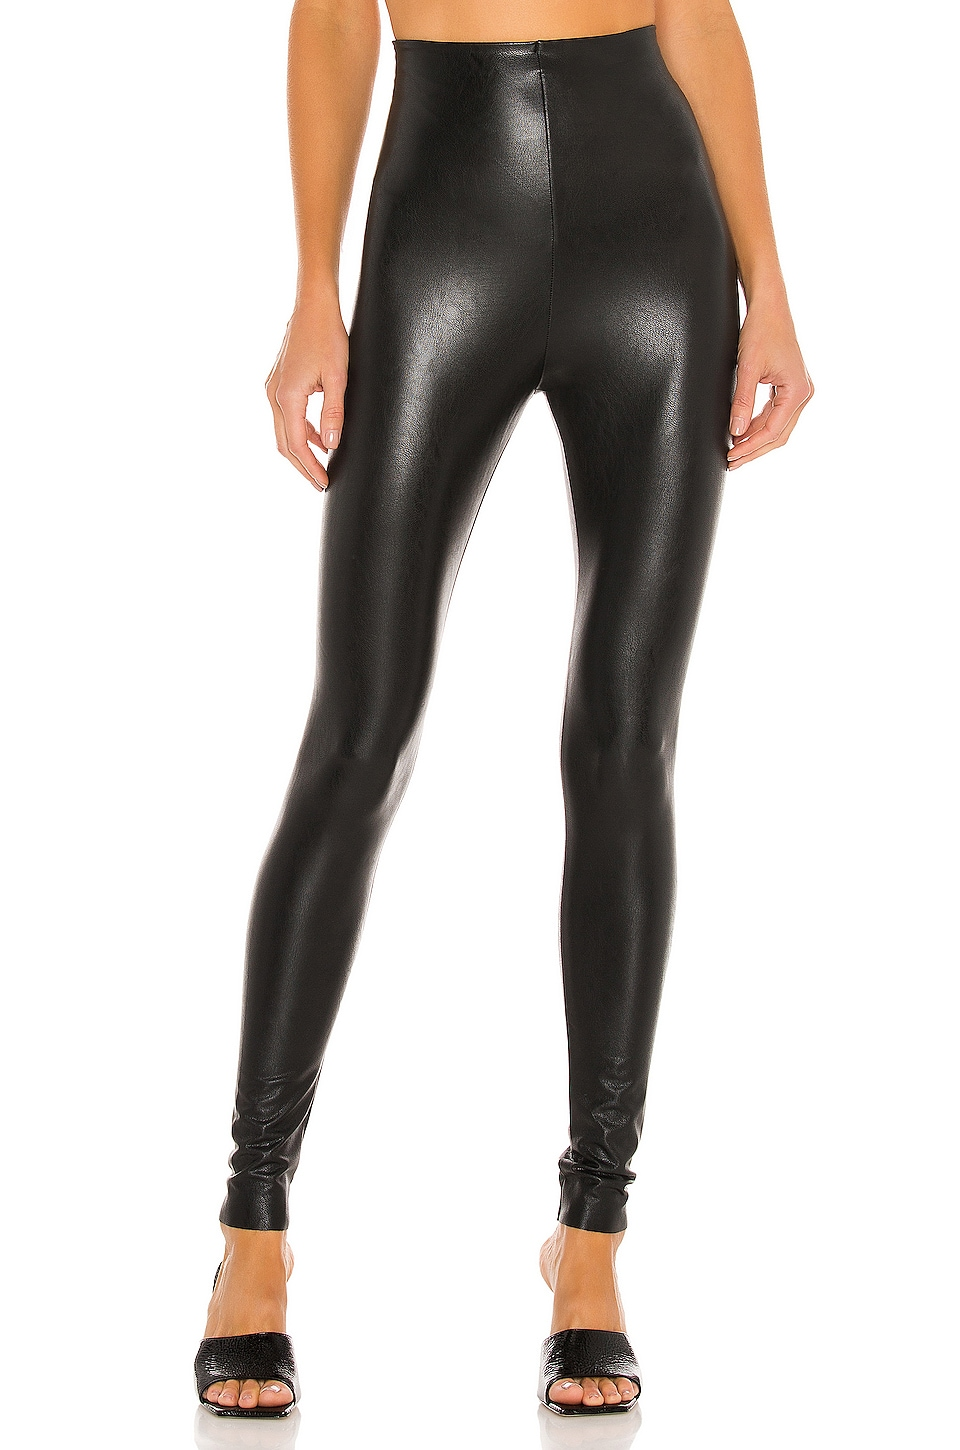 Perfect Control Faux Leather Legging             Commando                                                                                                       CA$ 137.62 3